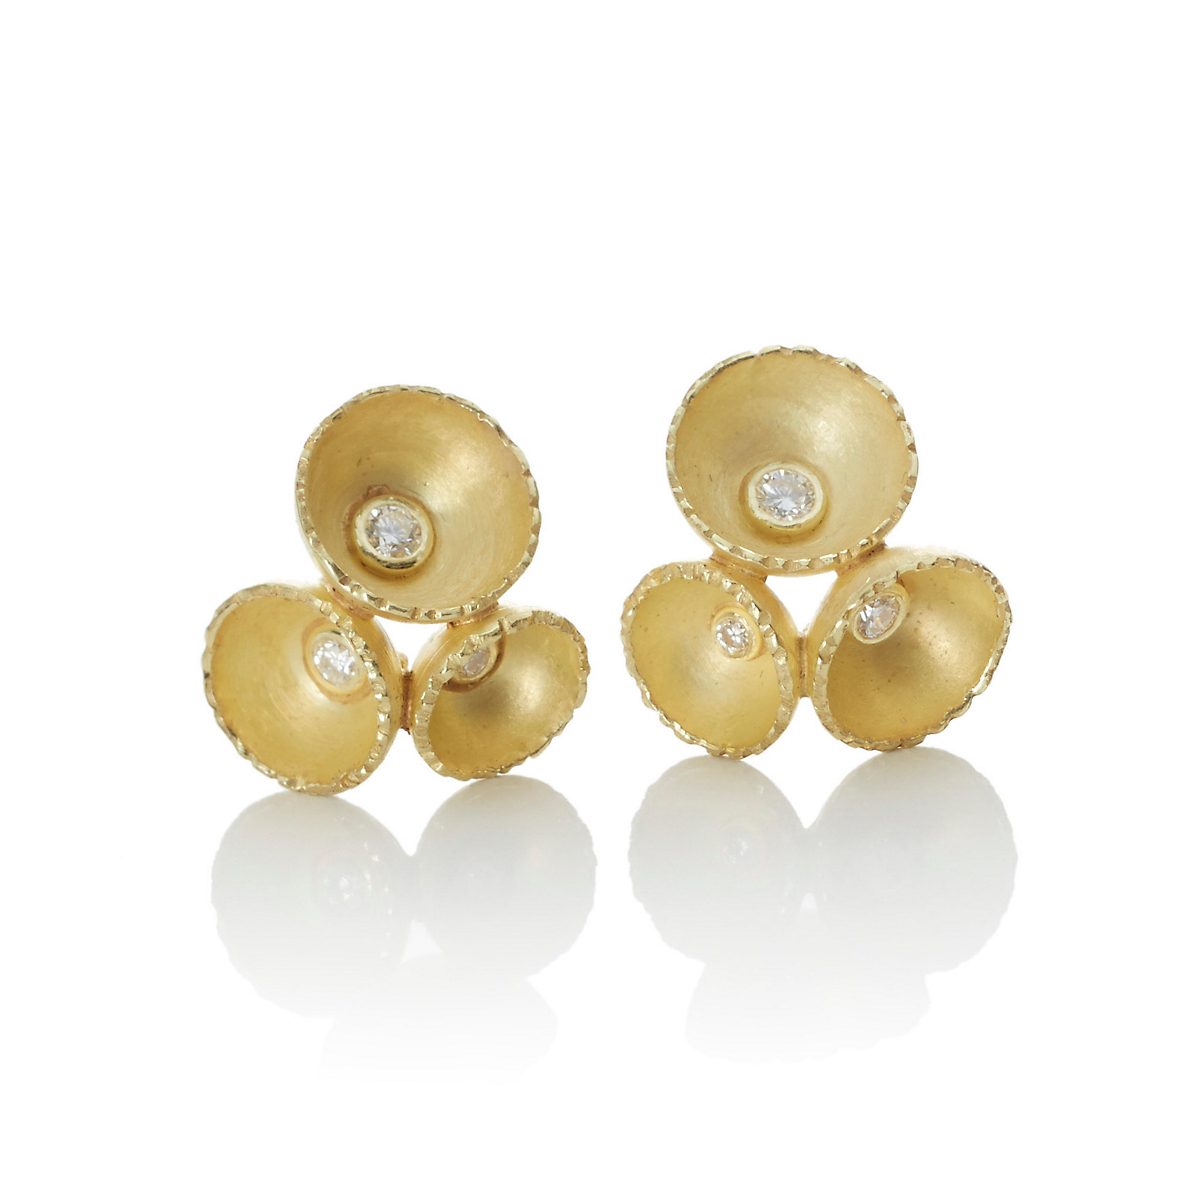 Barbara Heinrich Gold Cup & Diamond Earrings